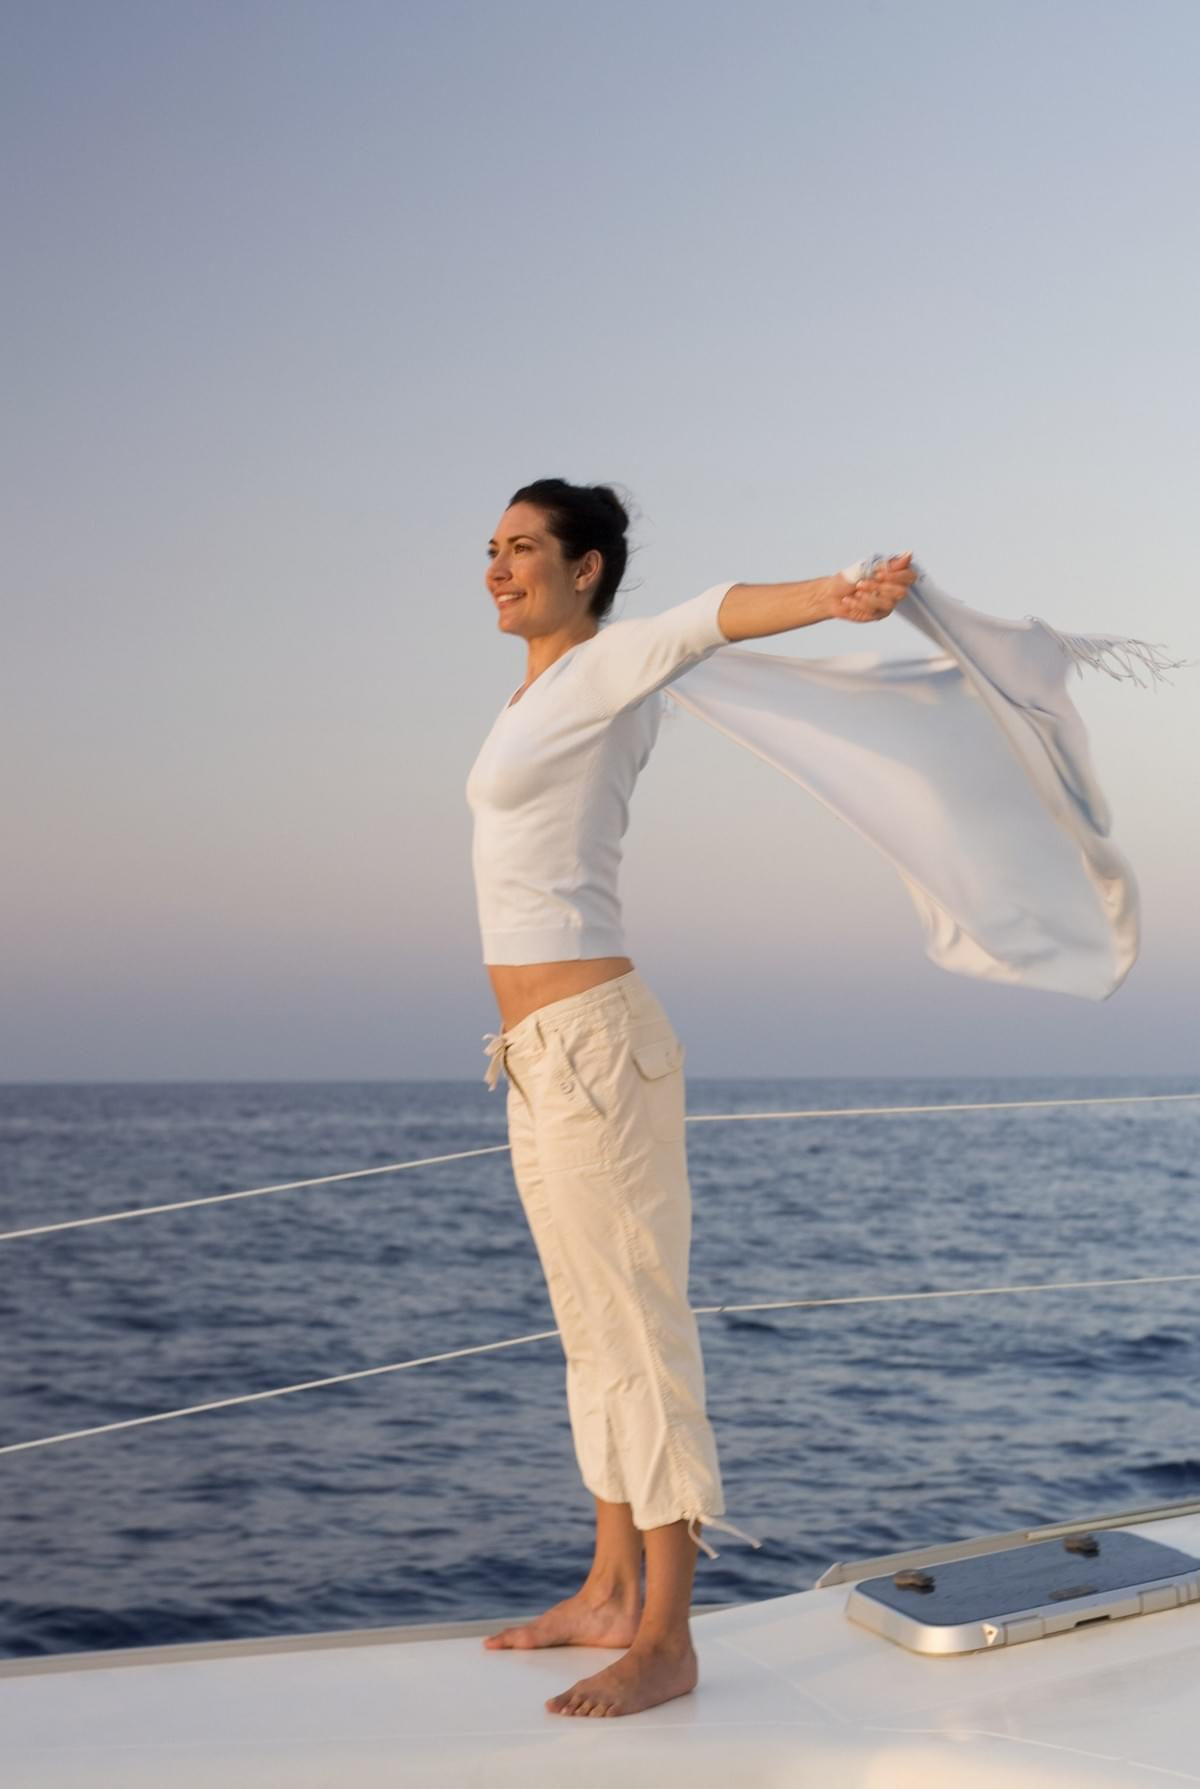 Yacht and yoga_ feeling the wind